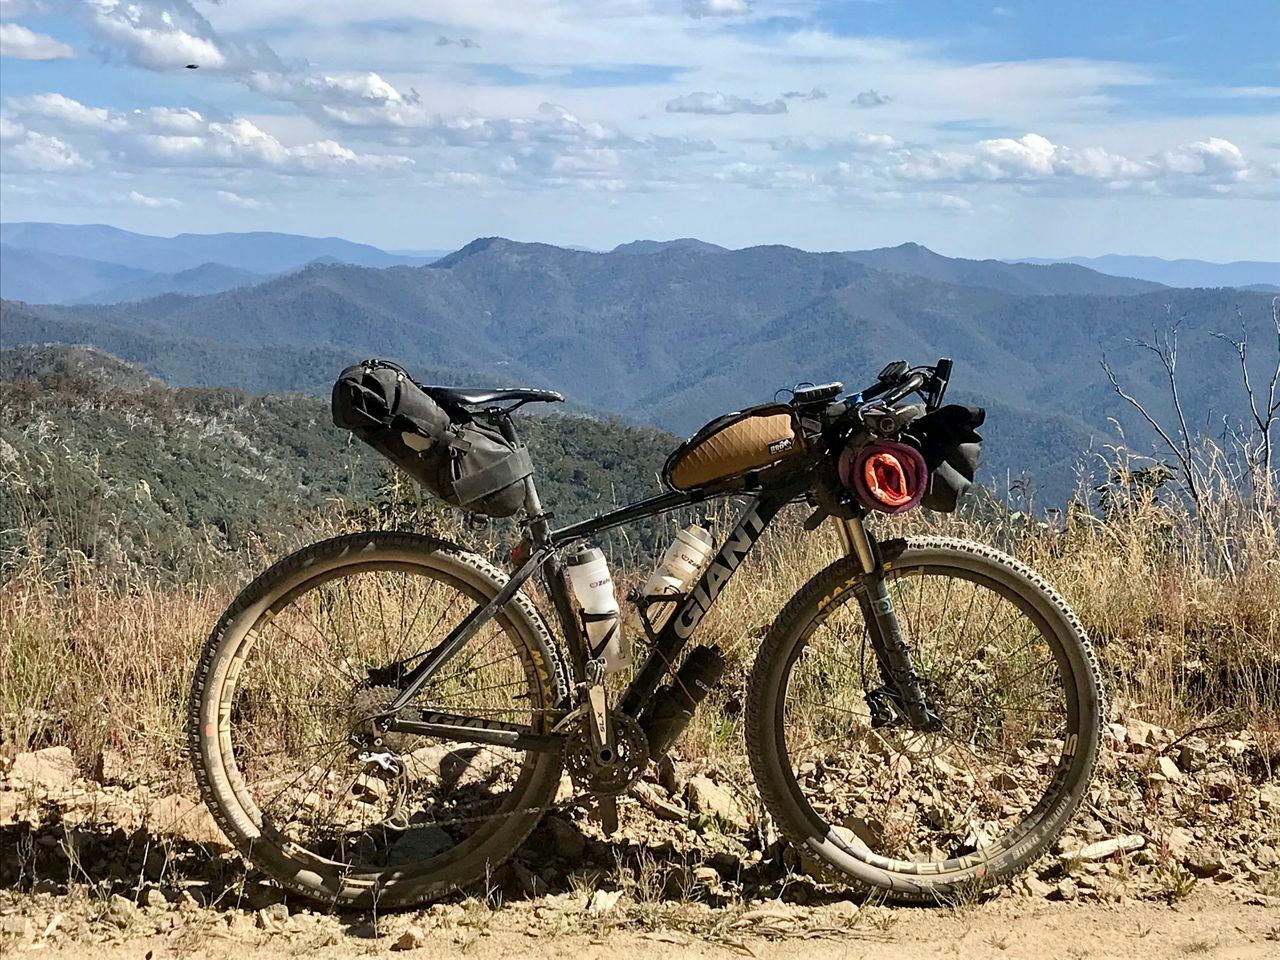 Bikepacking bike of the Victoria divide 550